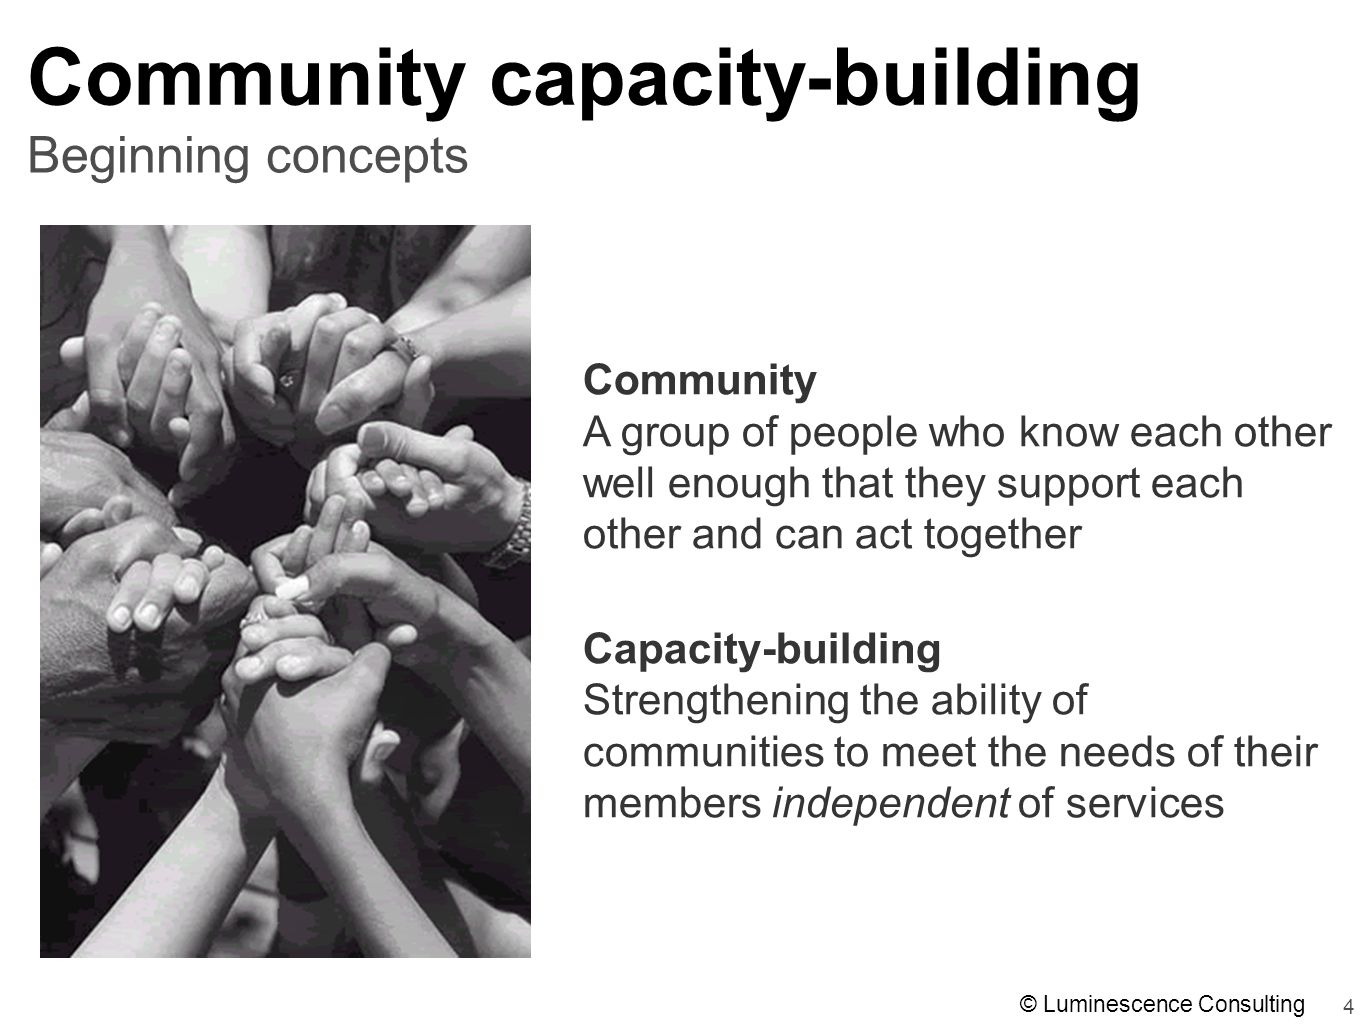 4 Beginning concepts Community capacity-building Community A group of people who know each other well enough that they support each other and can act together Capacity-building Strengthening the ability of communities to meet the needs of their members independent of services © Luminescence Consulting